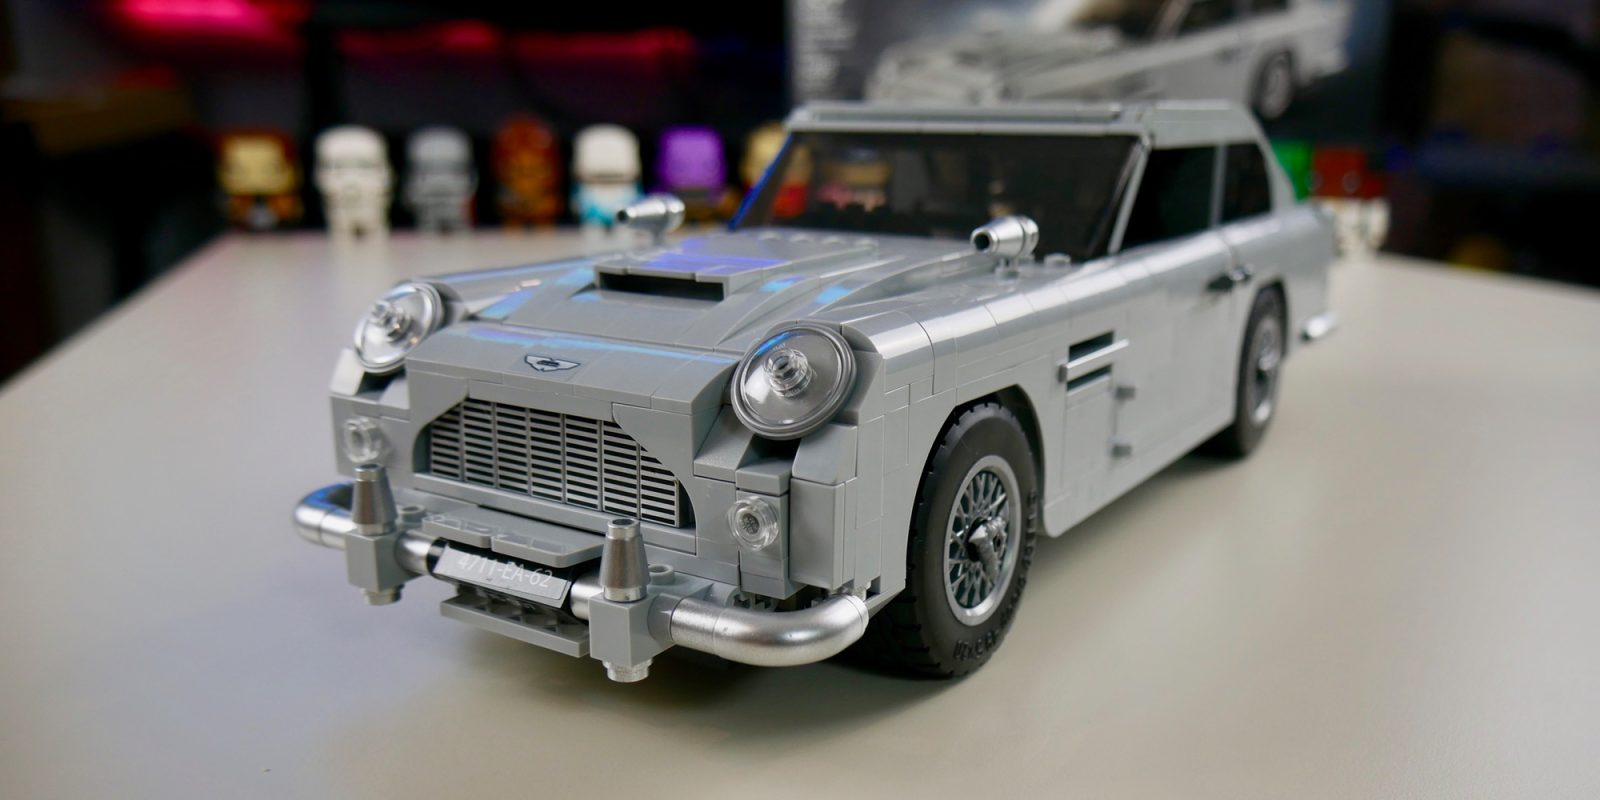 review lego 39 s 007 aston martin db5 packs striking design and impressive functionality 9to5toys. Black Bedroom Furniture Sets. Home Design Ideas